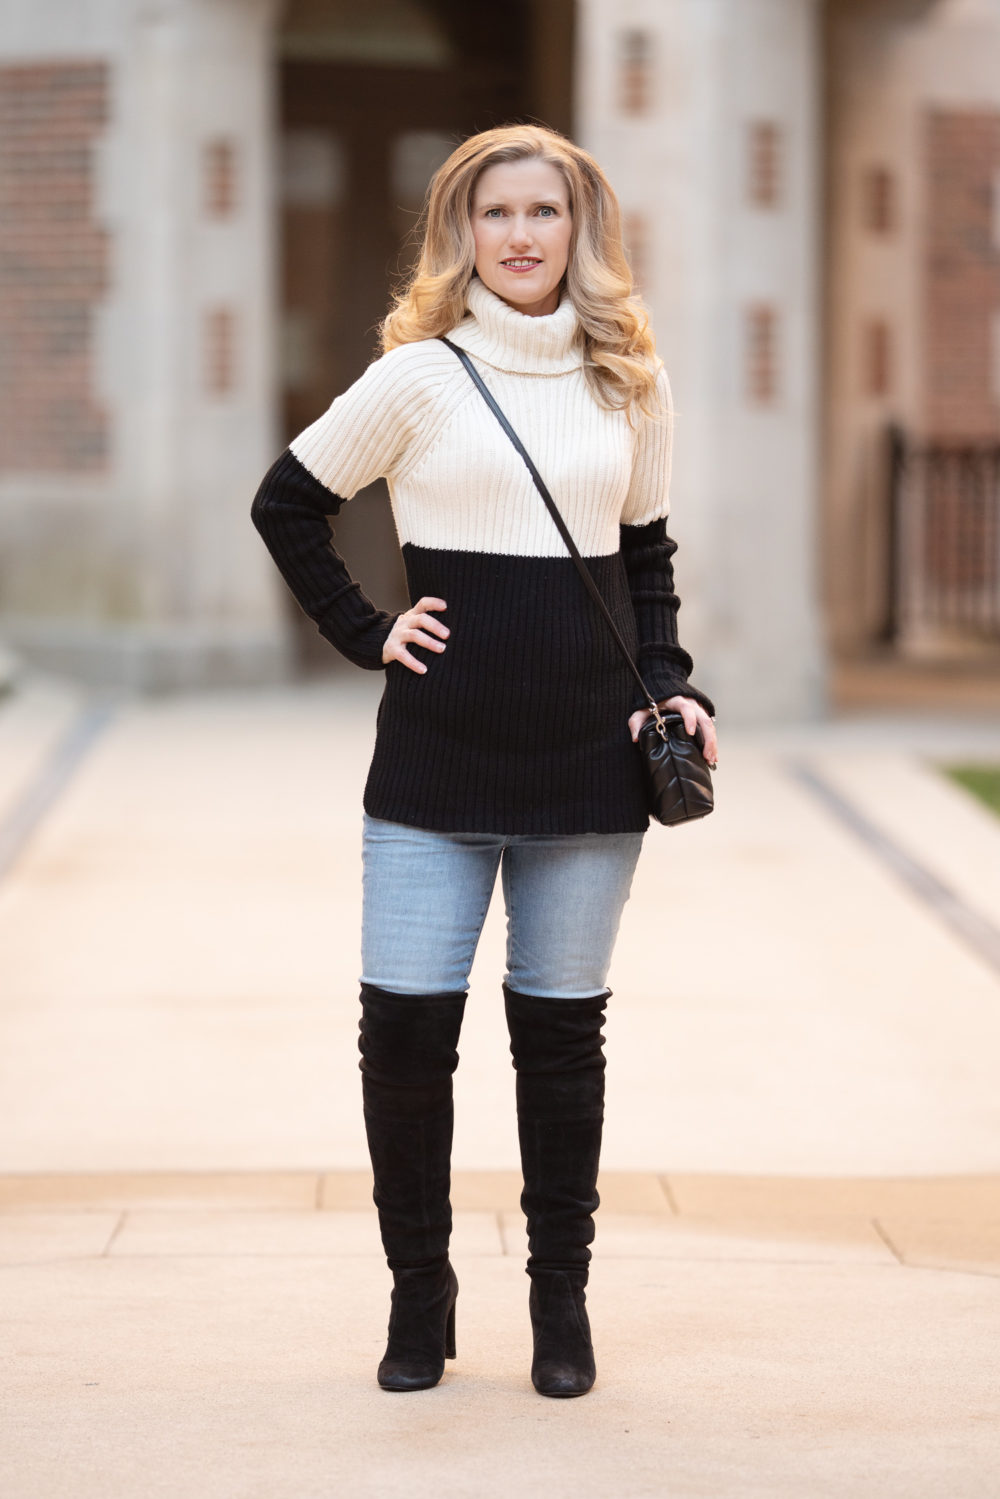 Tape-In Hair Extensions | Petite Fashion and Style Blog | Aqua Colorblock Turtleneck Sweater | Stewart Weitzman Highland | Avissa Salon Ann Arbor Review